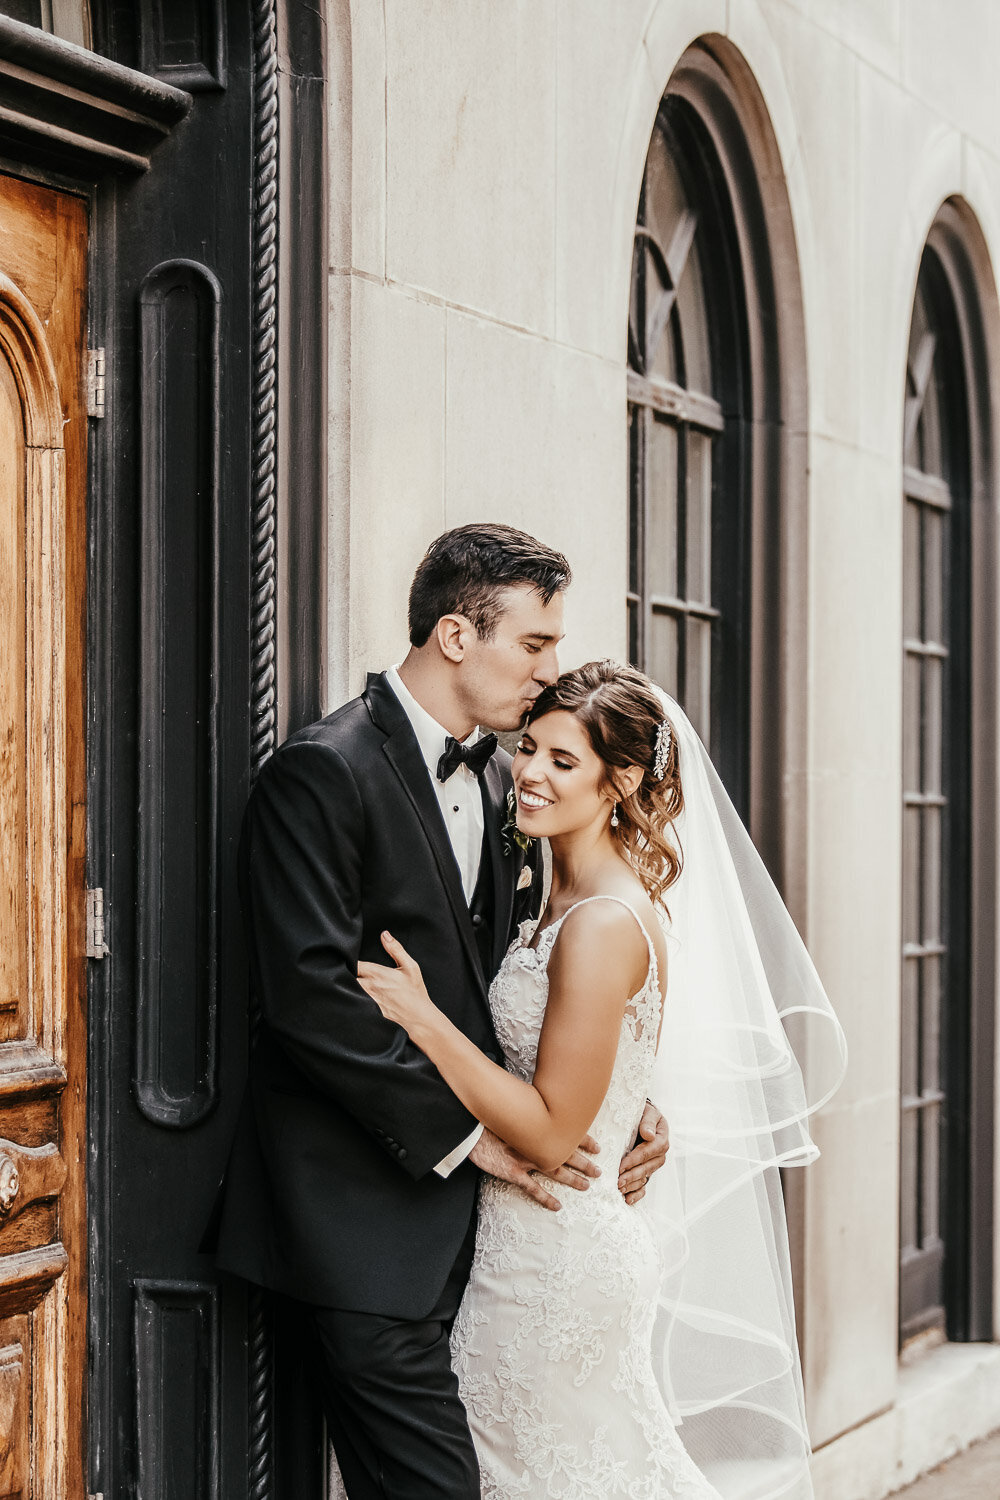 Bride & Groom kissing outside building in Buffalo, New York